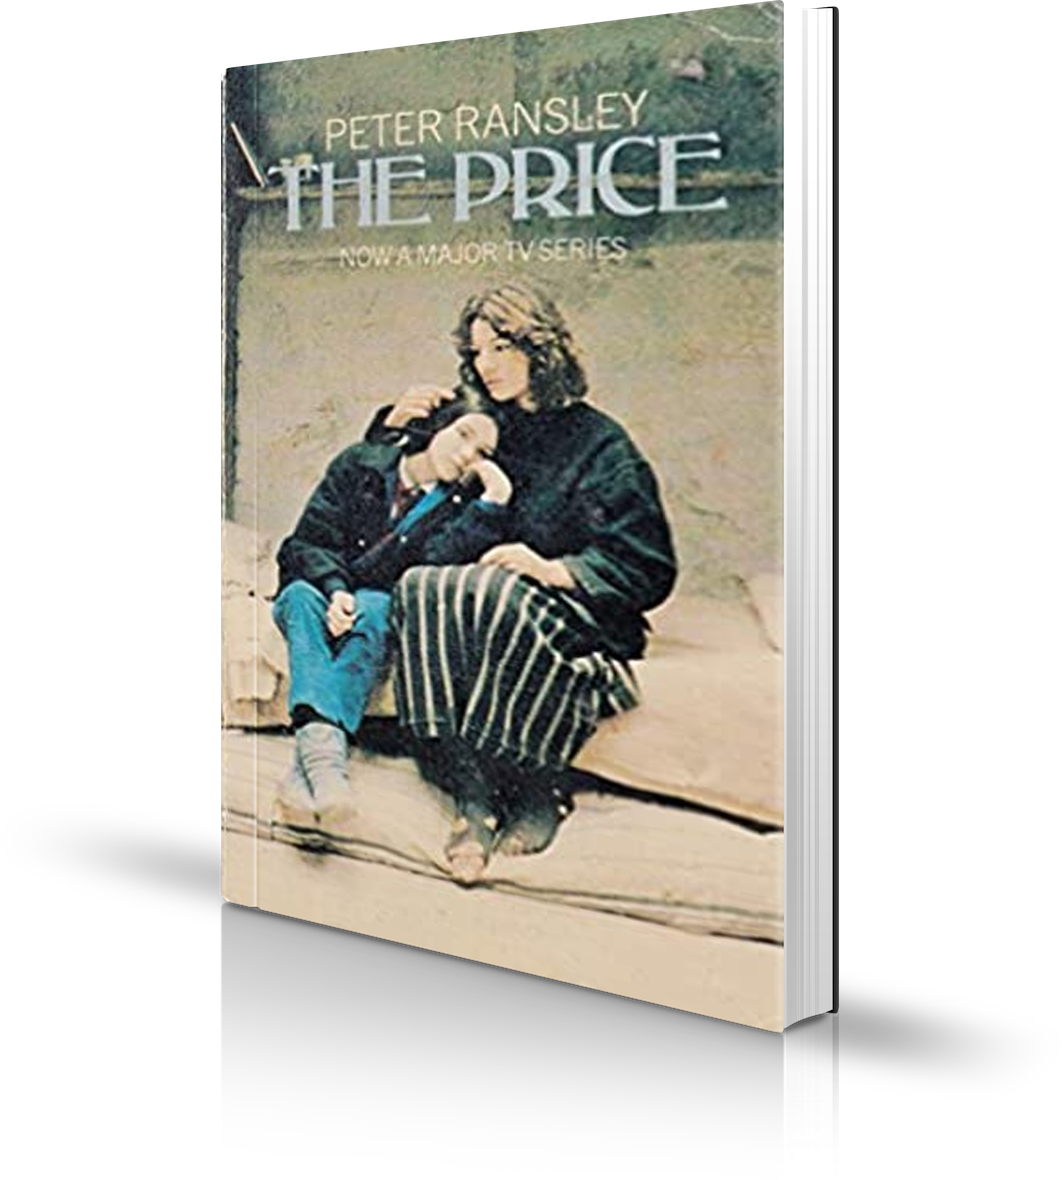 The Price by author Peter Ransley